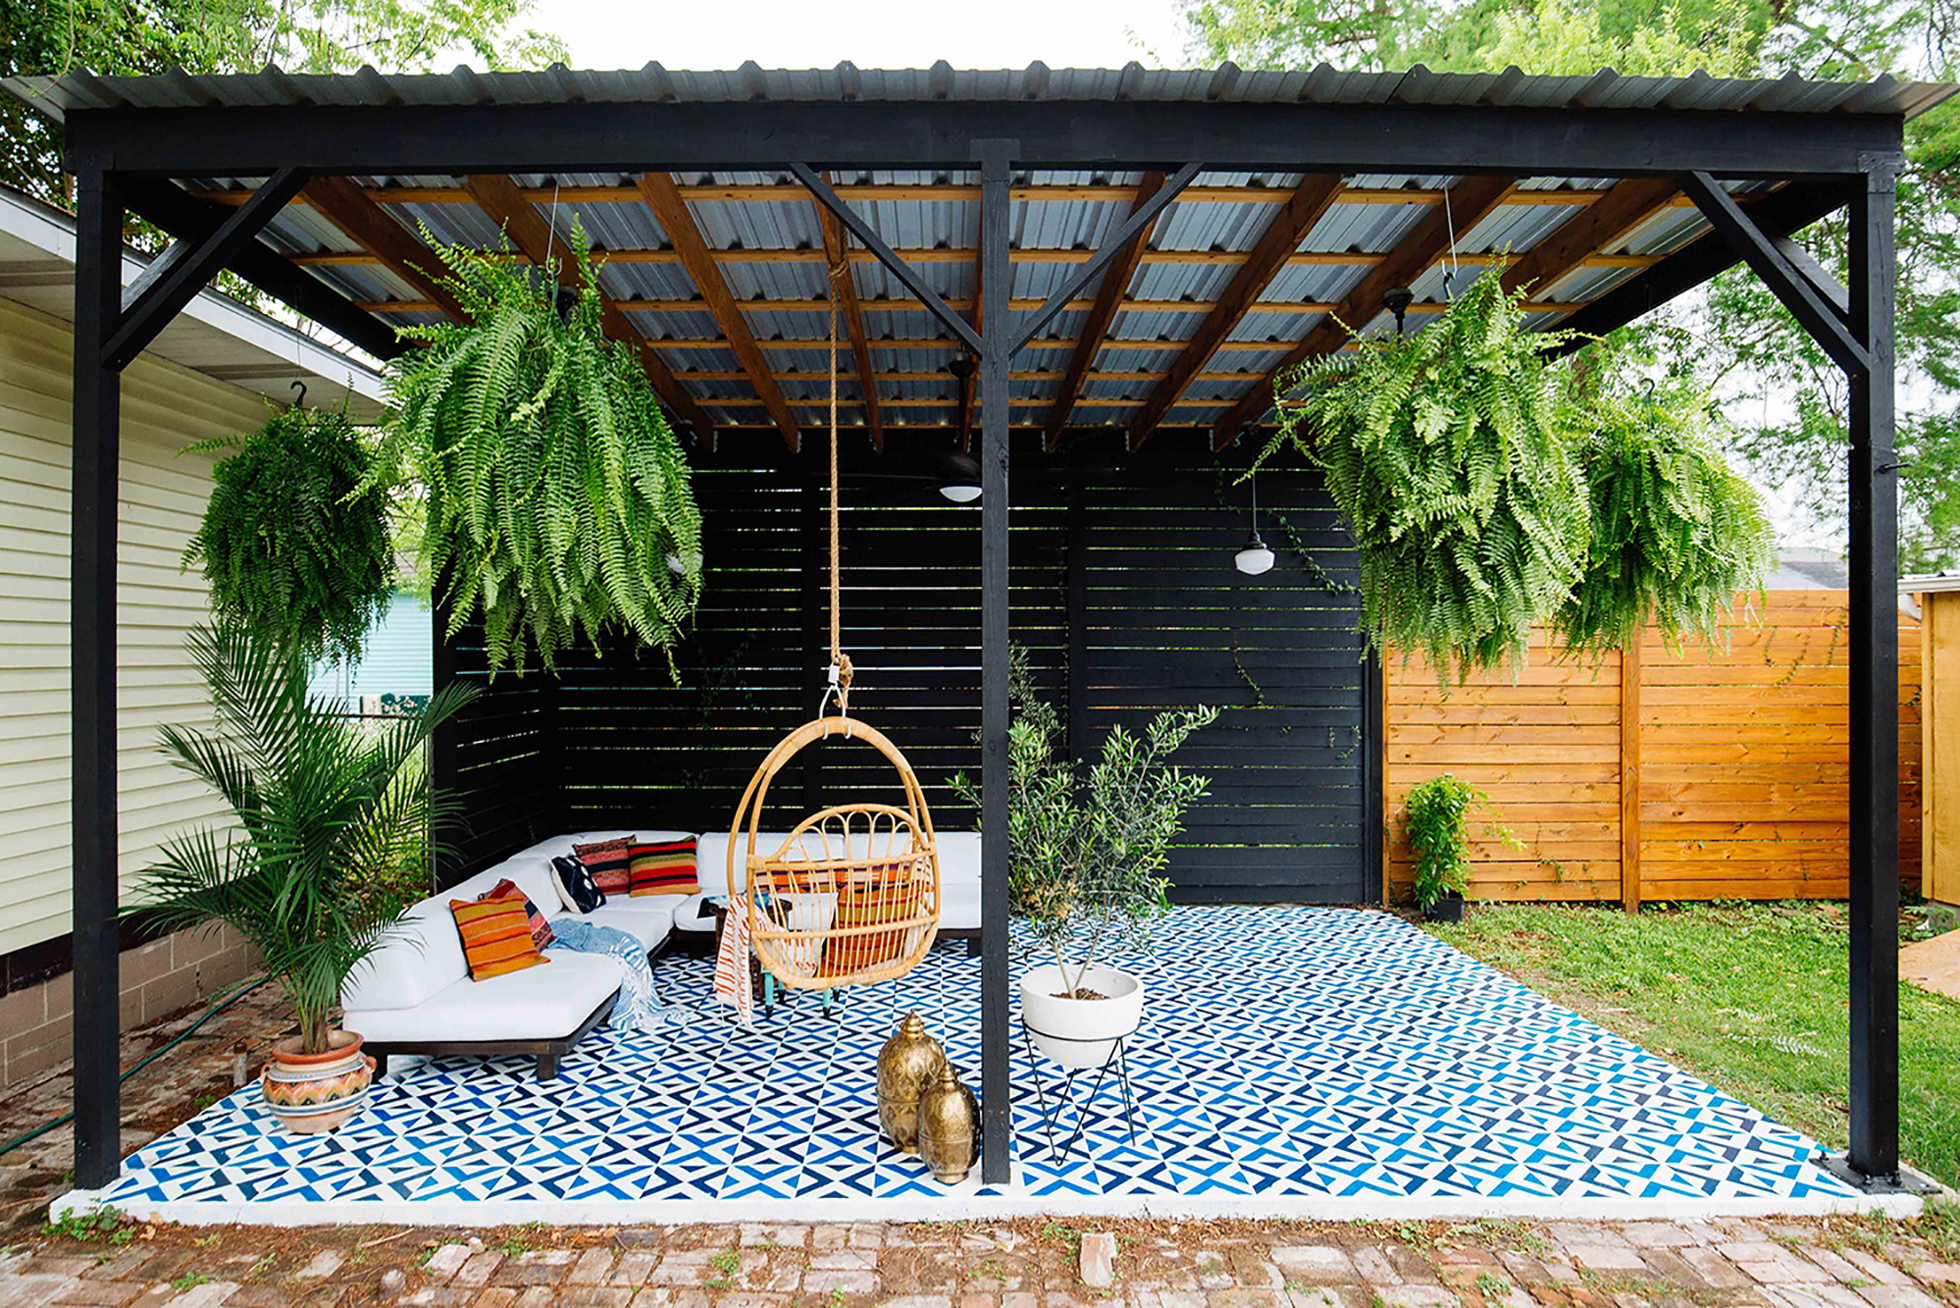 Small Patio Decorating Ideas | Fast-Growing Climbing Vines ... on Floating Patio Ideas id=74435